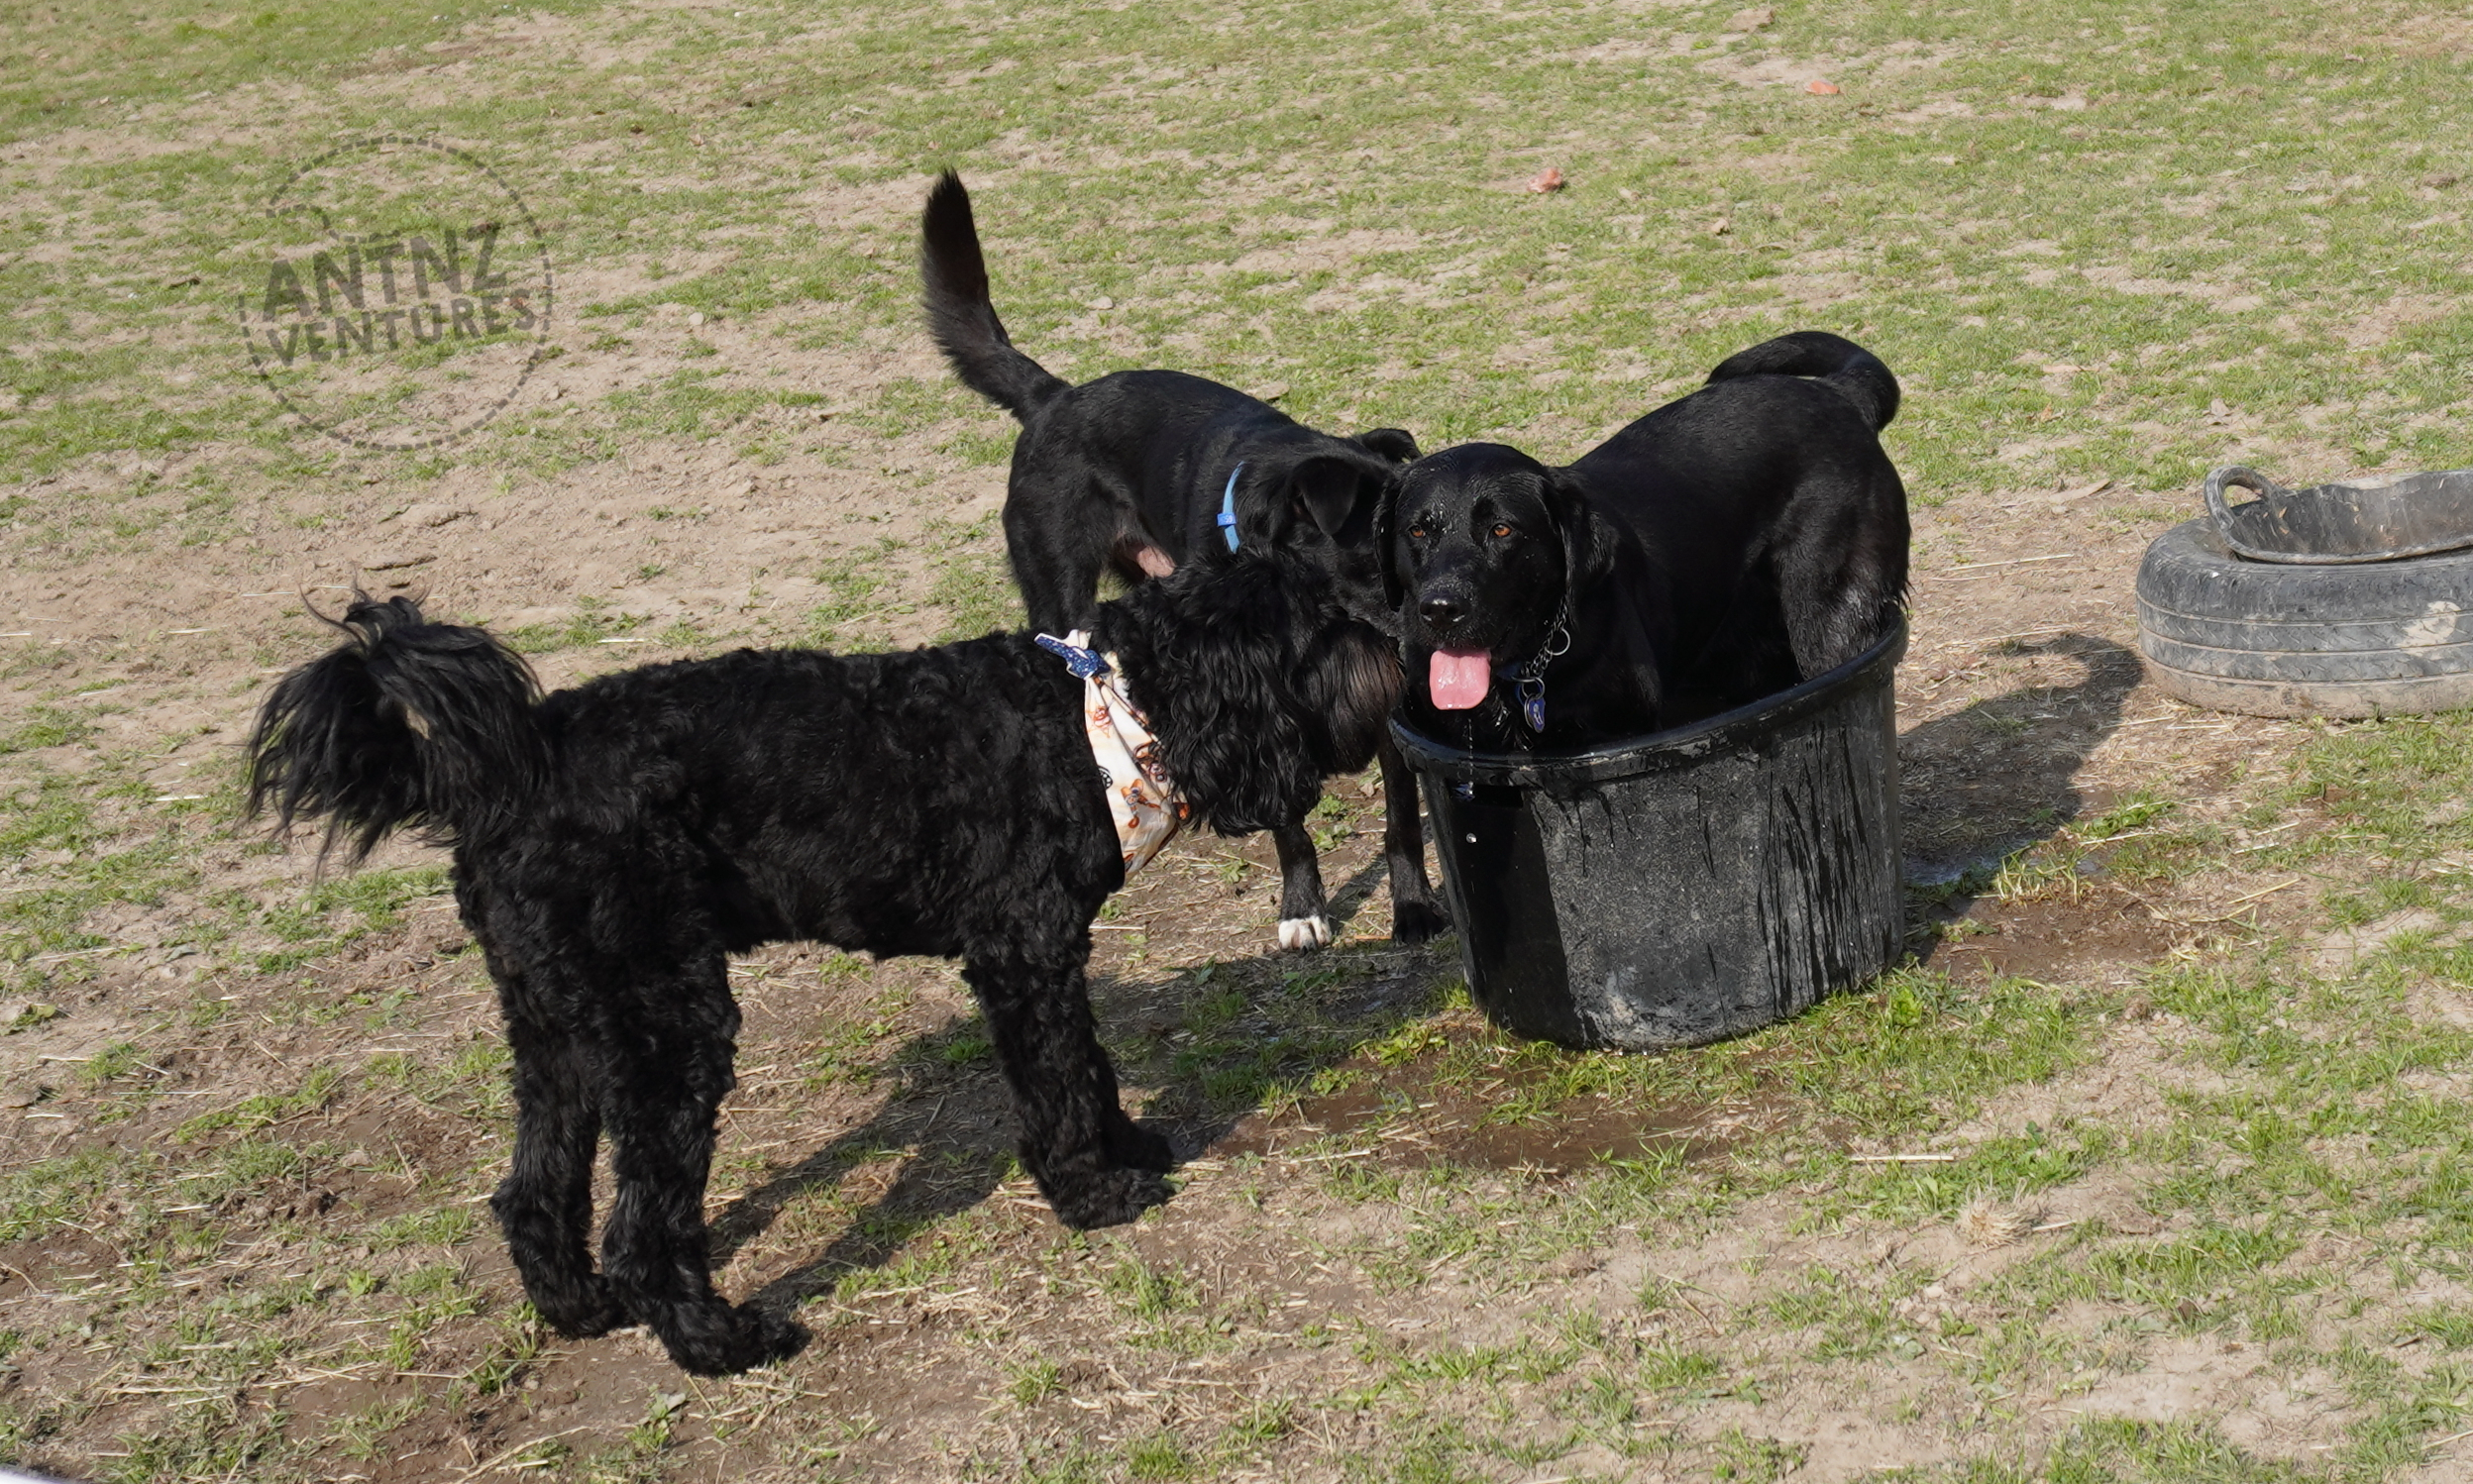 A picture of 3 dogs. 1 black Labradoodle, a black farm dog and a Labrador (Raven). Raven is standing in a small black round water through that she barely fits in. The other dogs are looking at Raven. All the dogs look alert and happy.